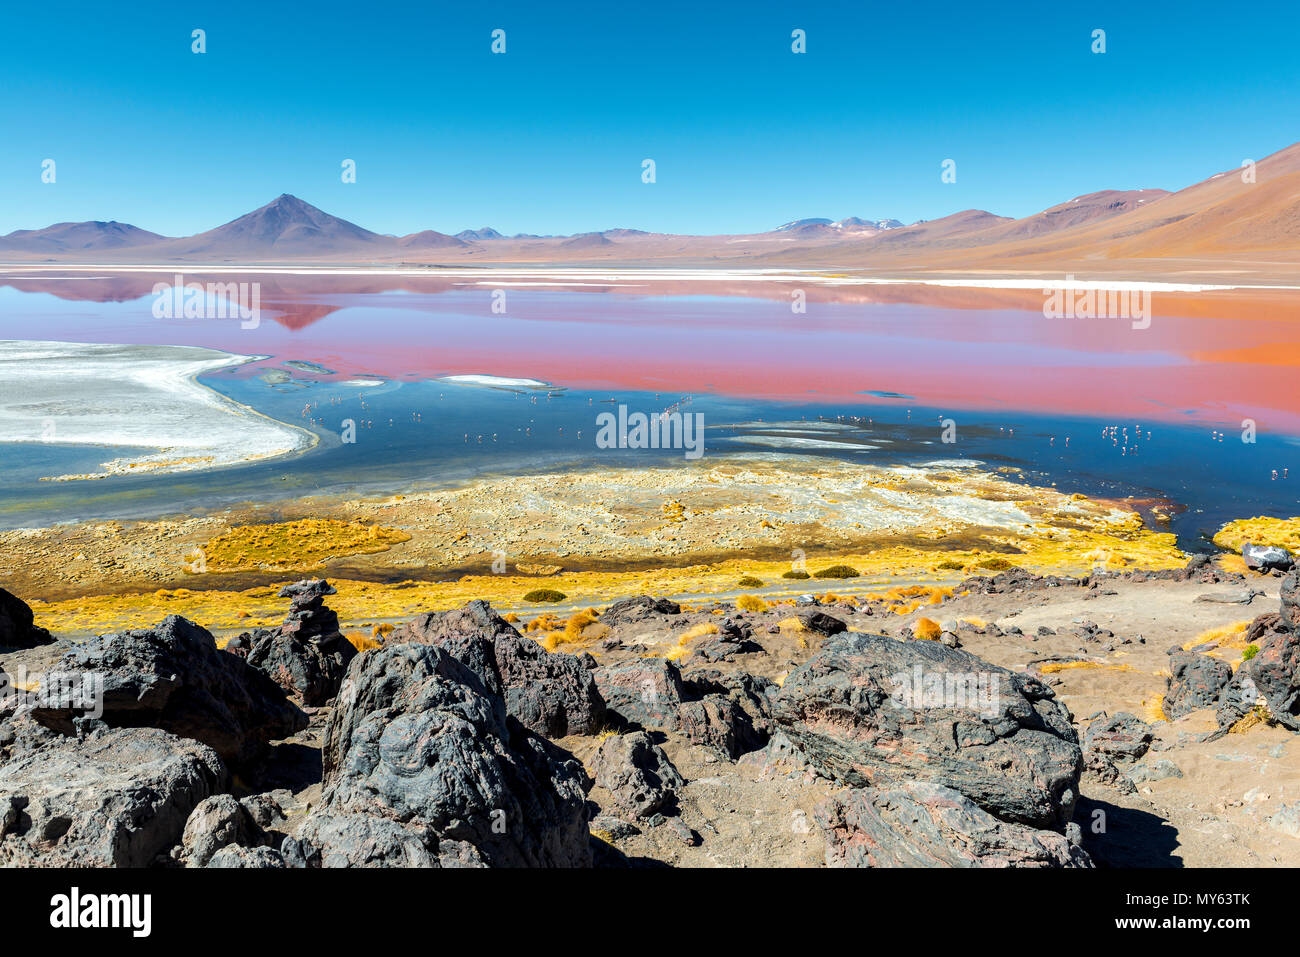 Landscape of the Laguna Colorada or Red Lagoon in the Uyuni Salt Flat region, Bolivia, South America. The red colors are due to algae and sediments. - Stock Image